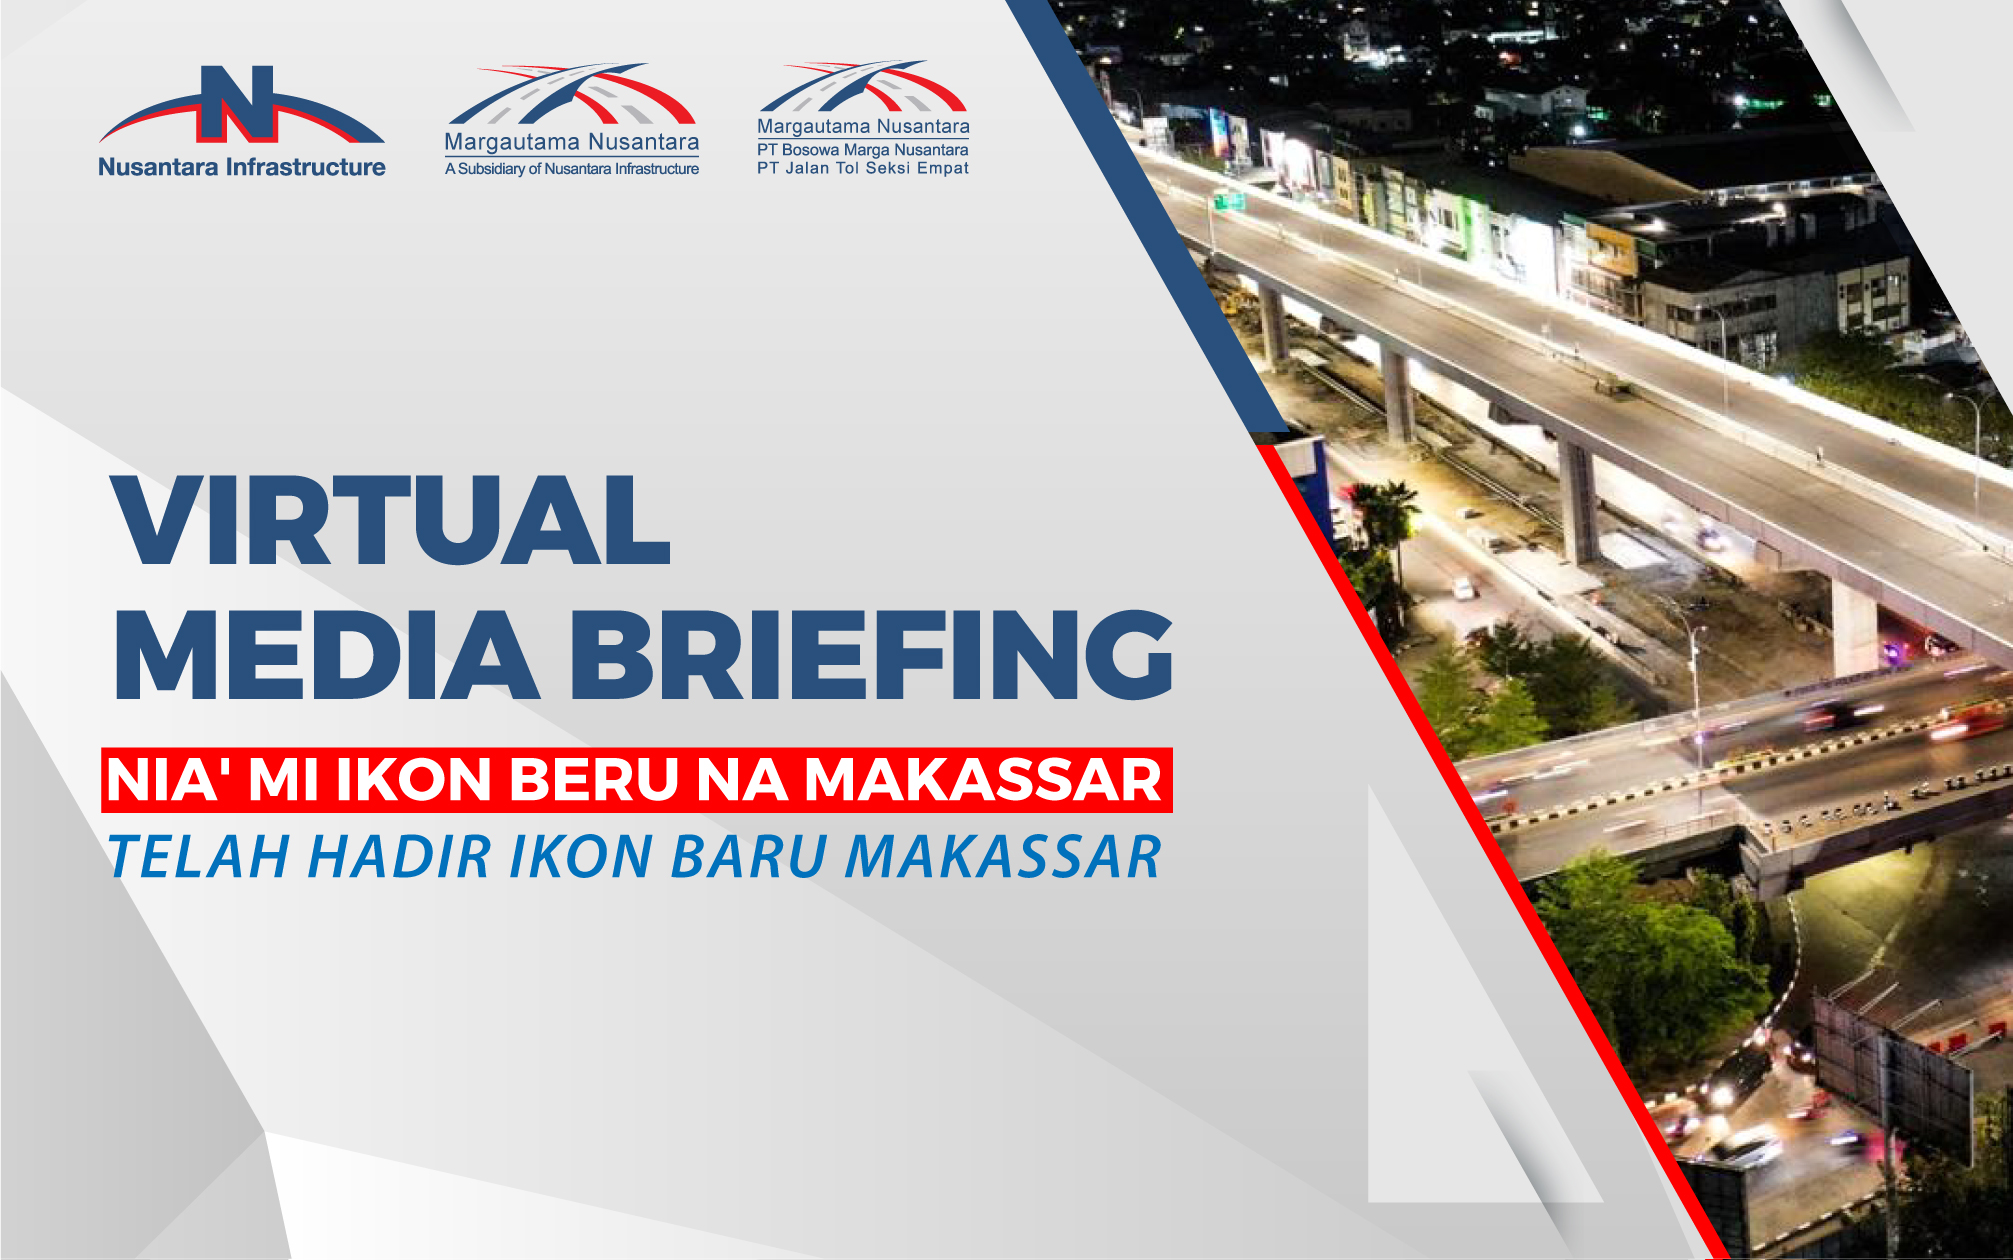 Virtual Media Briefing